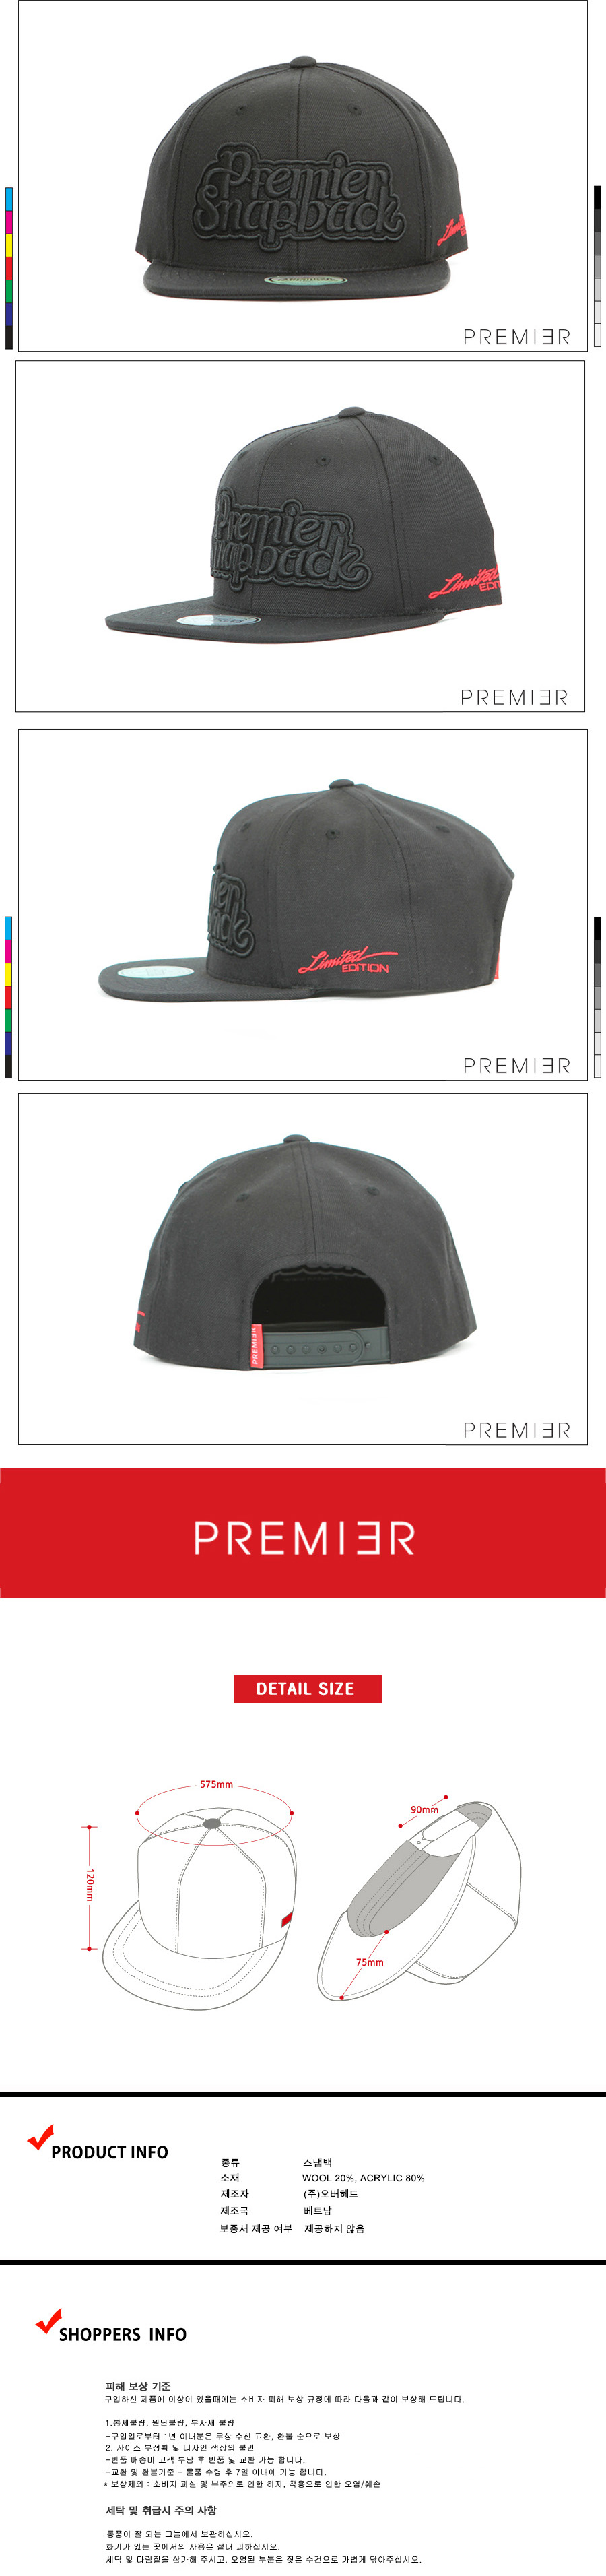 [ PREMIER ] [Premier] Snapback Limited Edition Clear Logo All Black (P774)